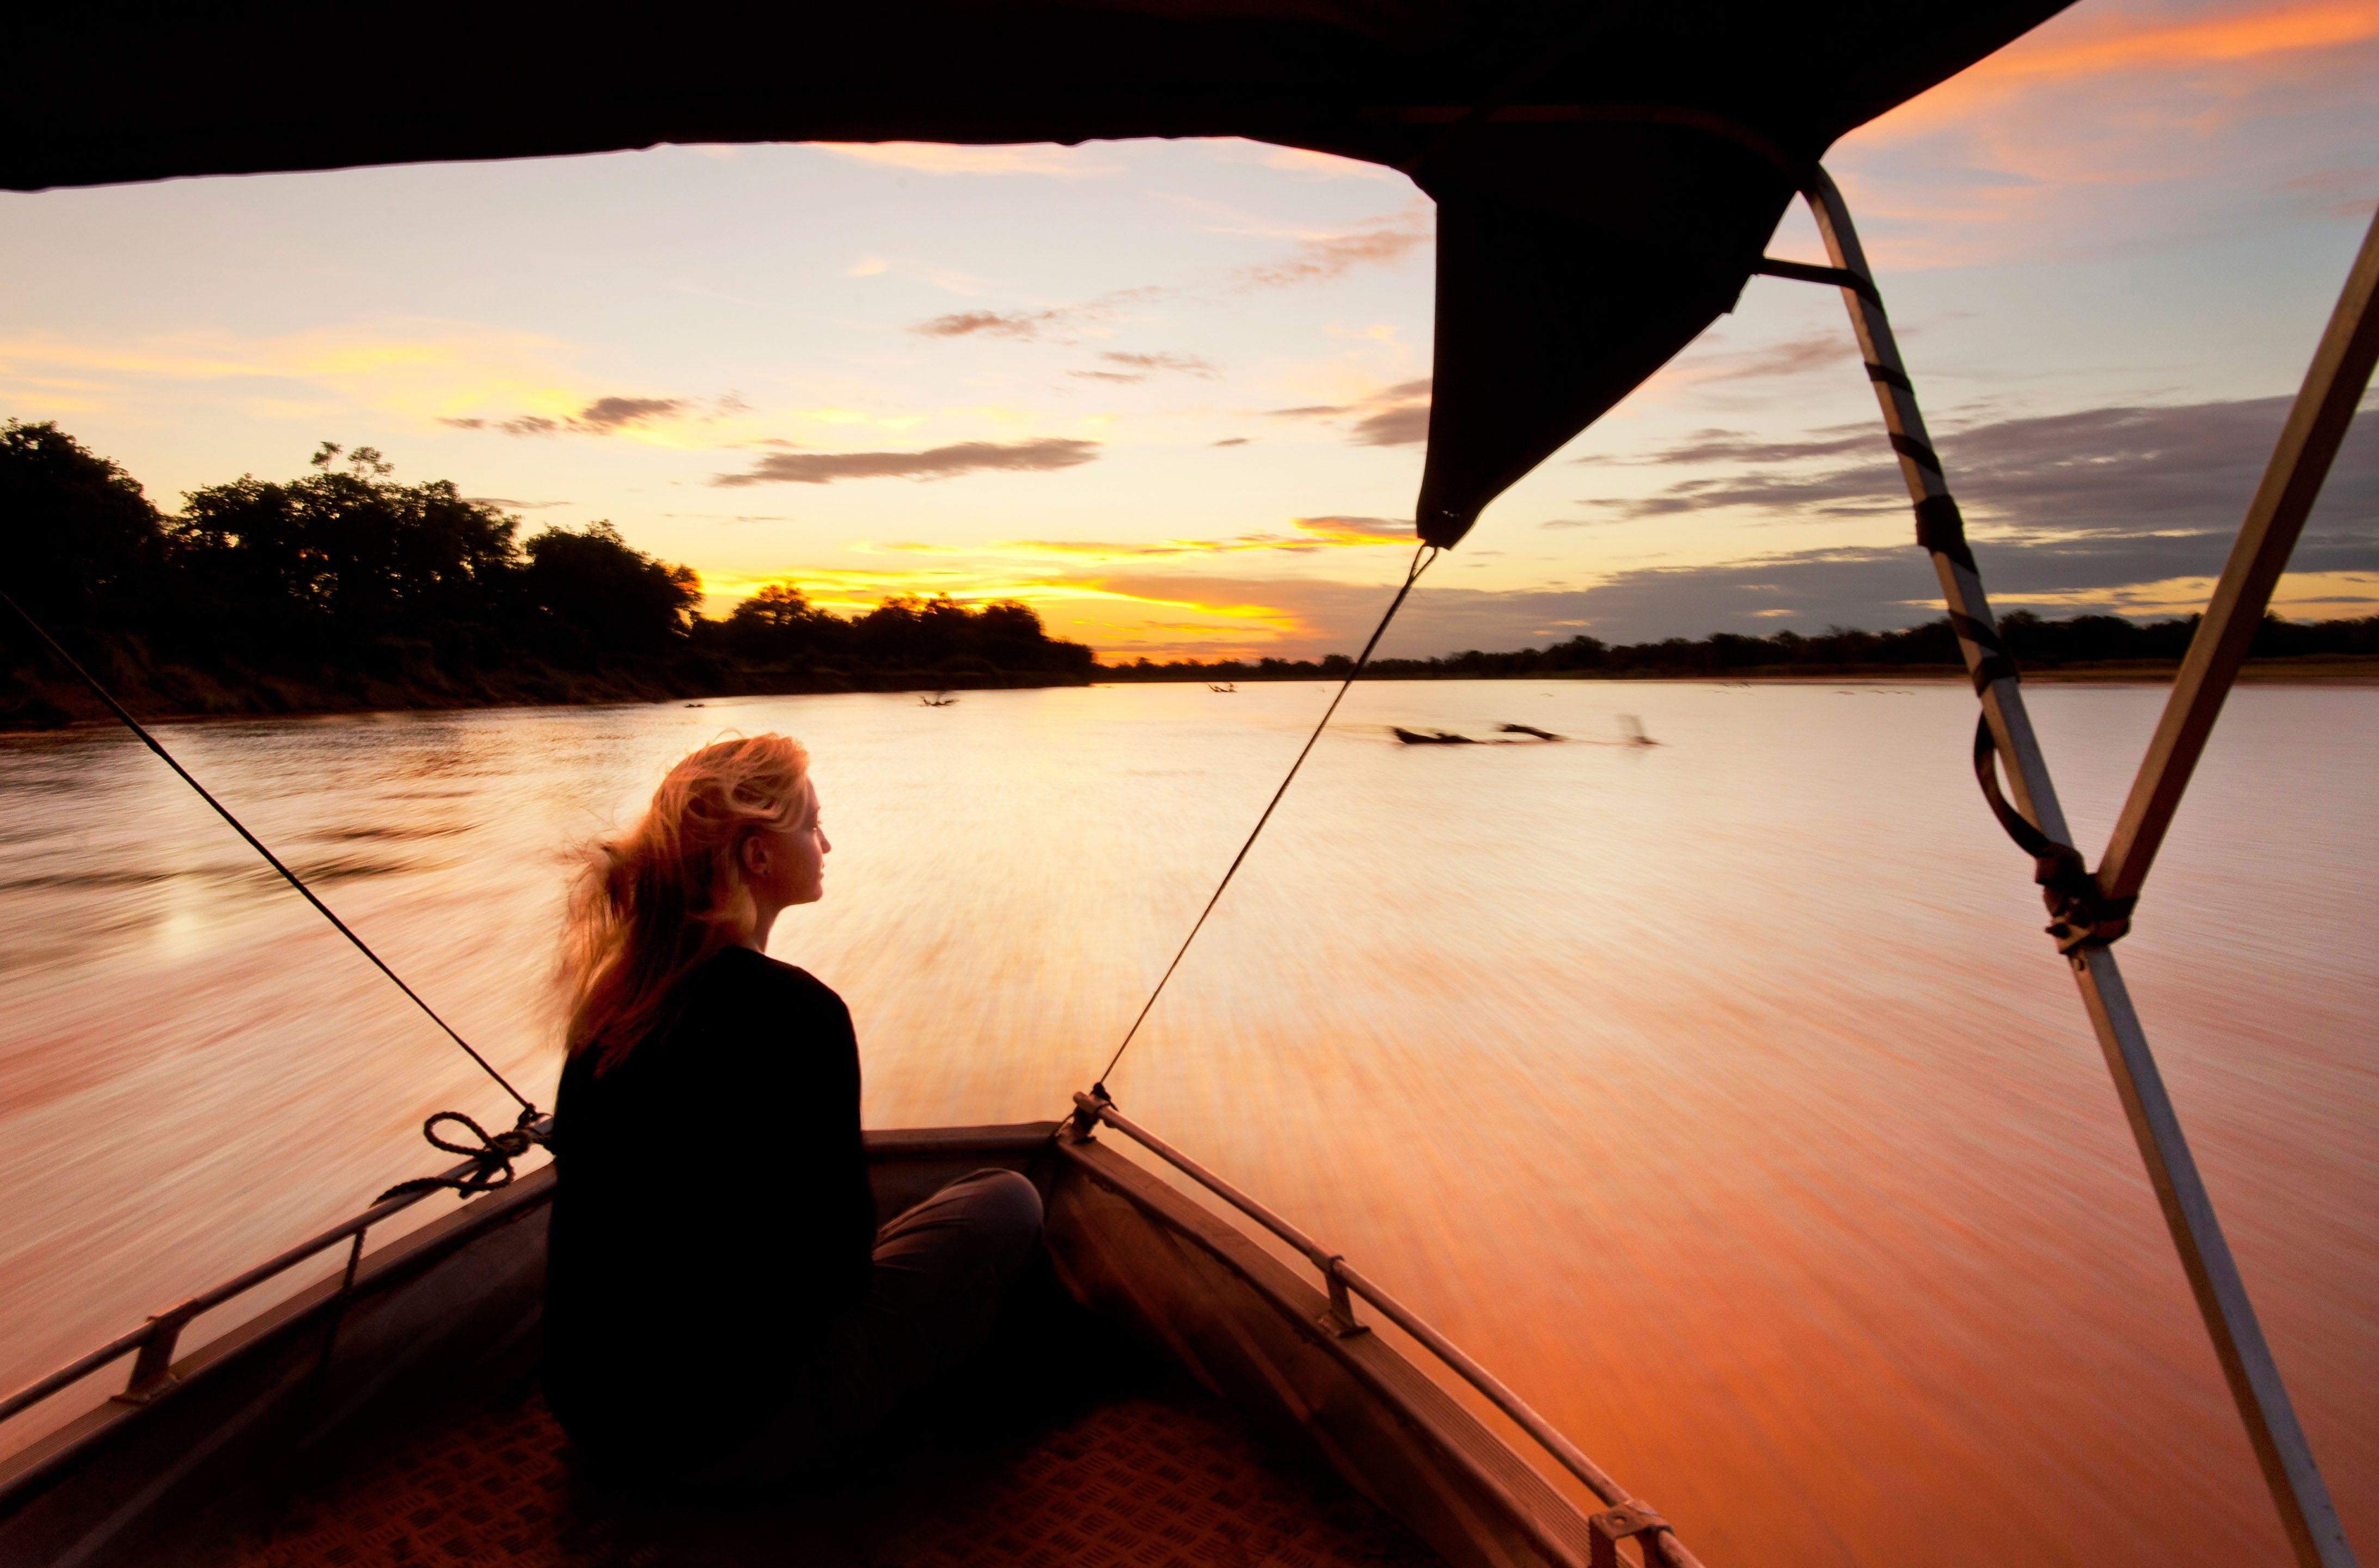 Boat Trip in South Luangwa National Park - What to do in Zambia